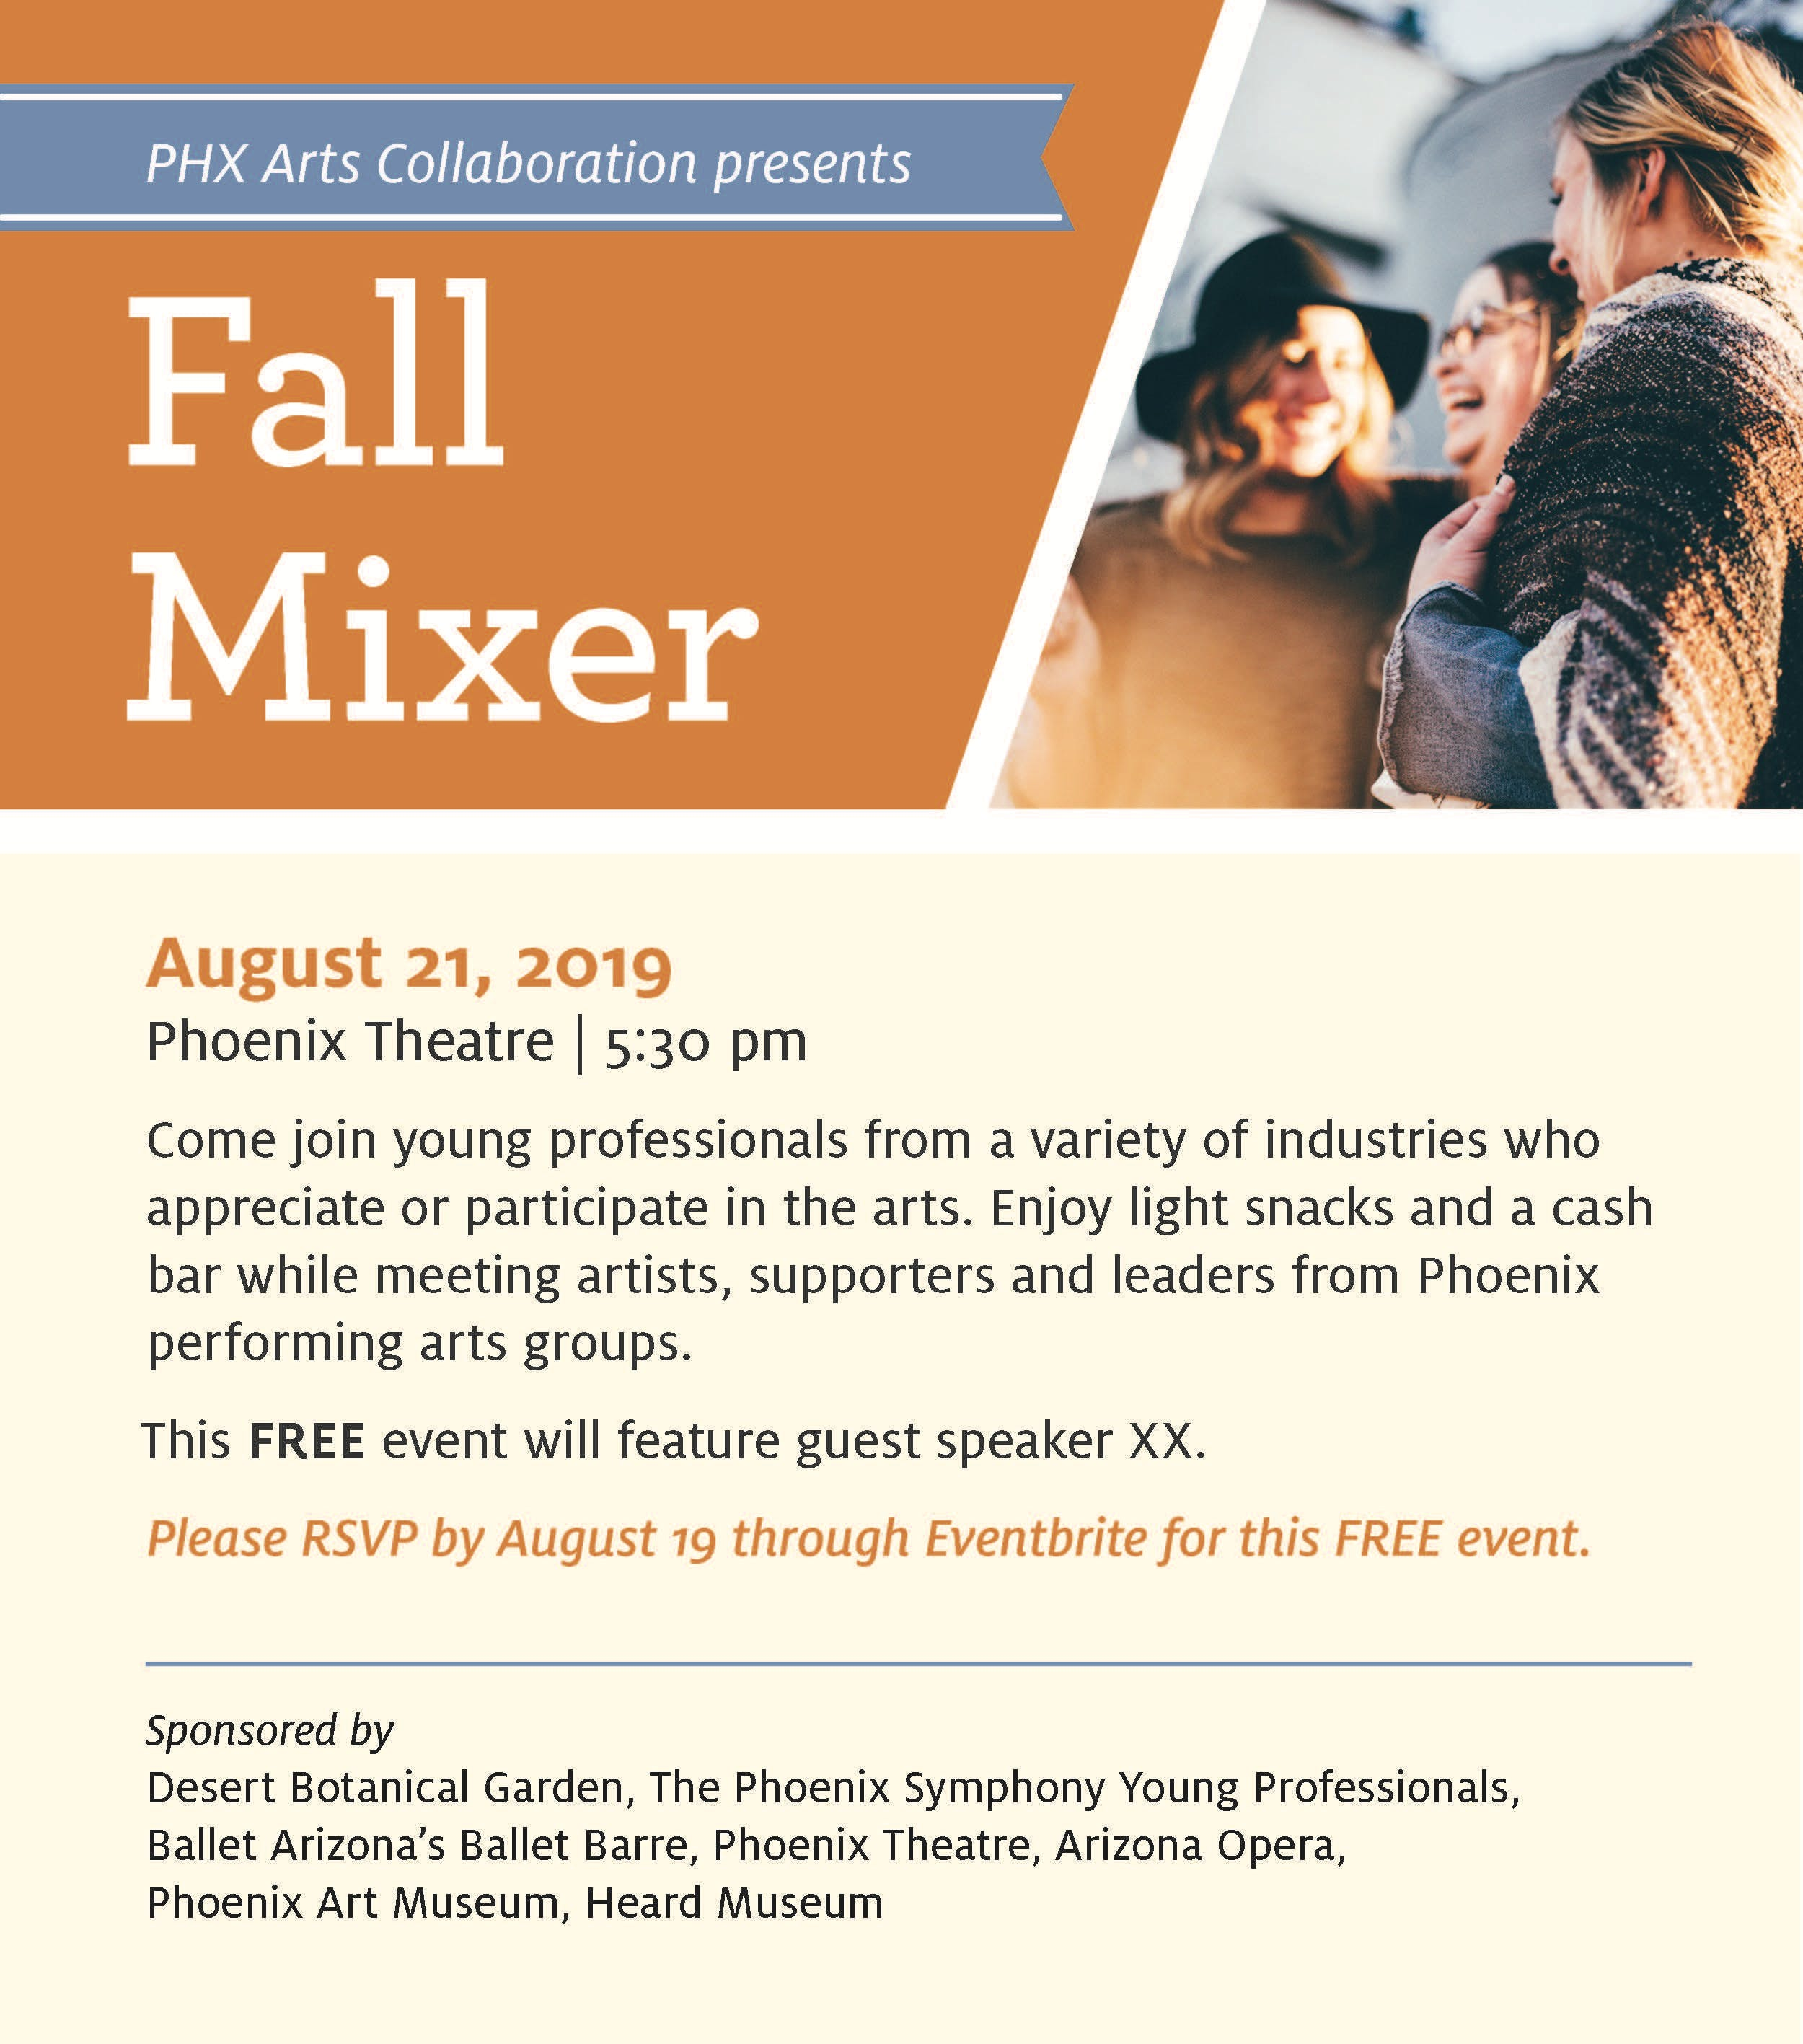 PHX Arts Collaboration Fall Mixer 2019 with Secretary of State Katie Hobbs